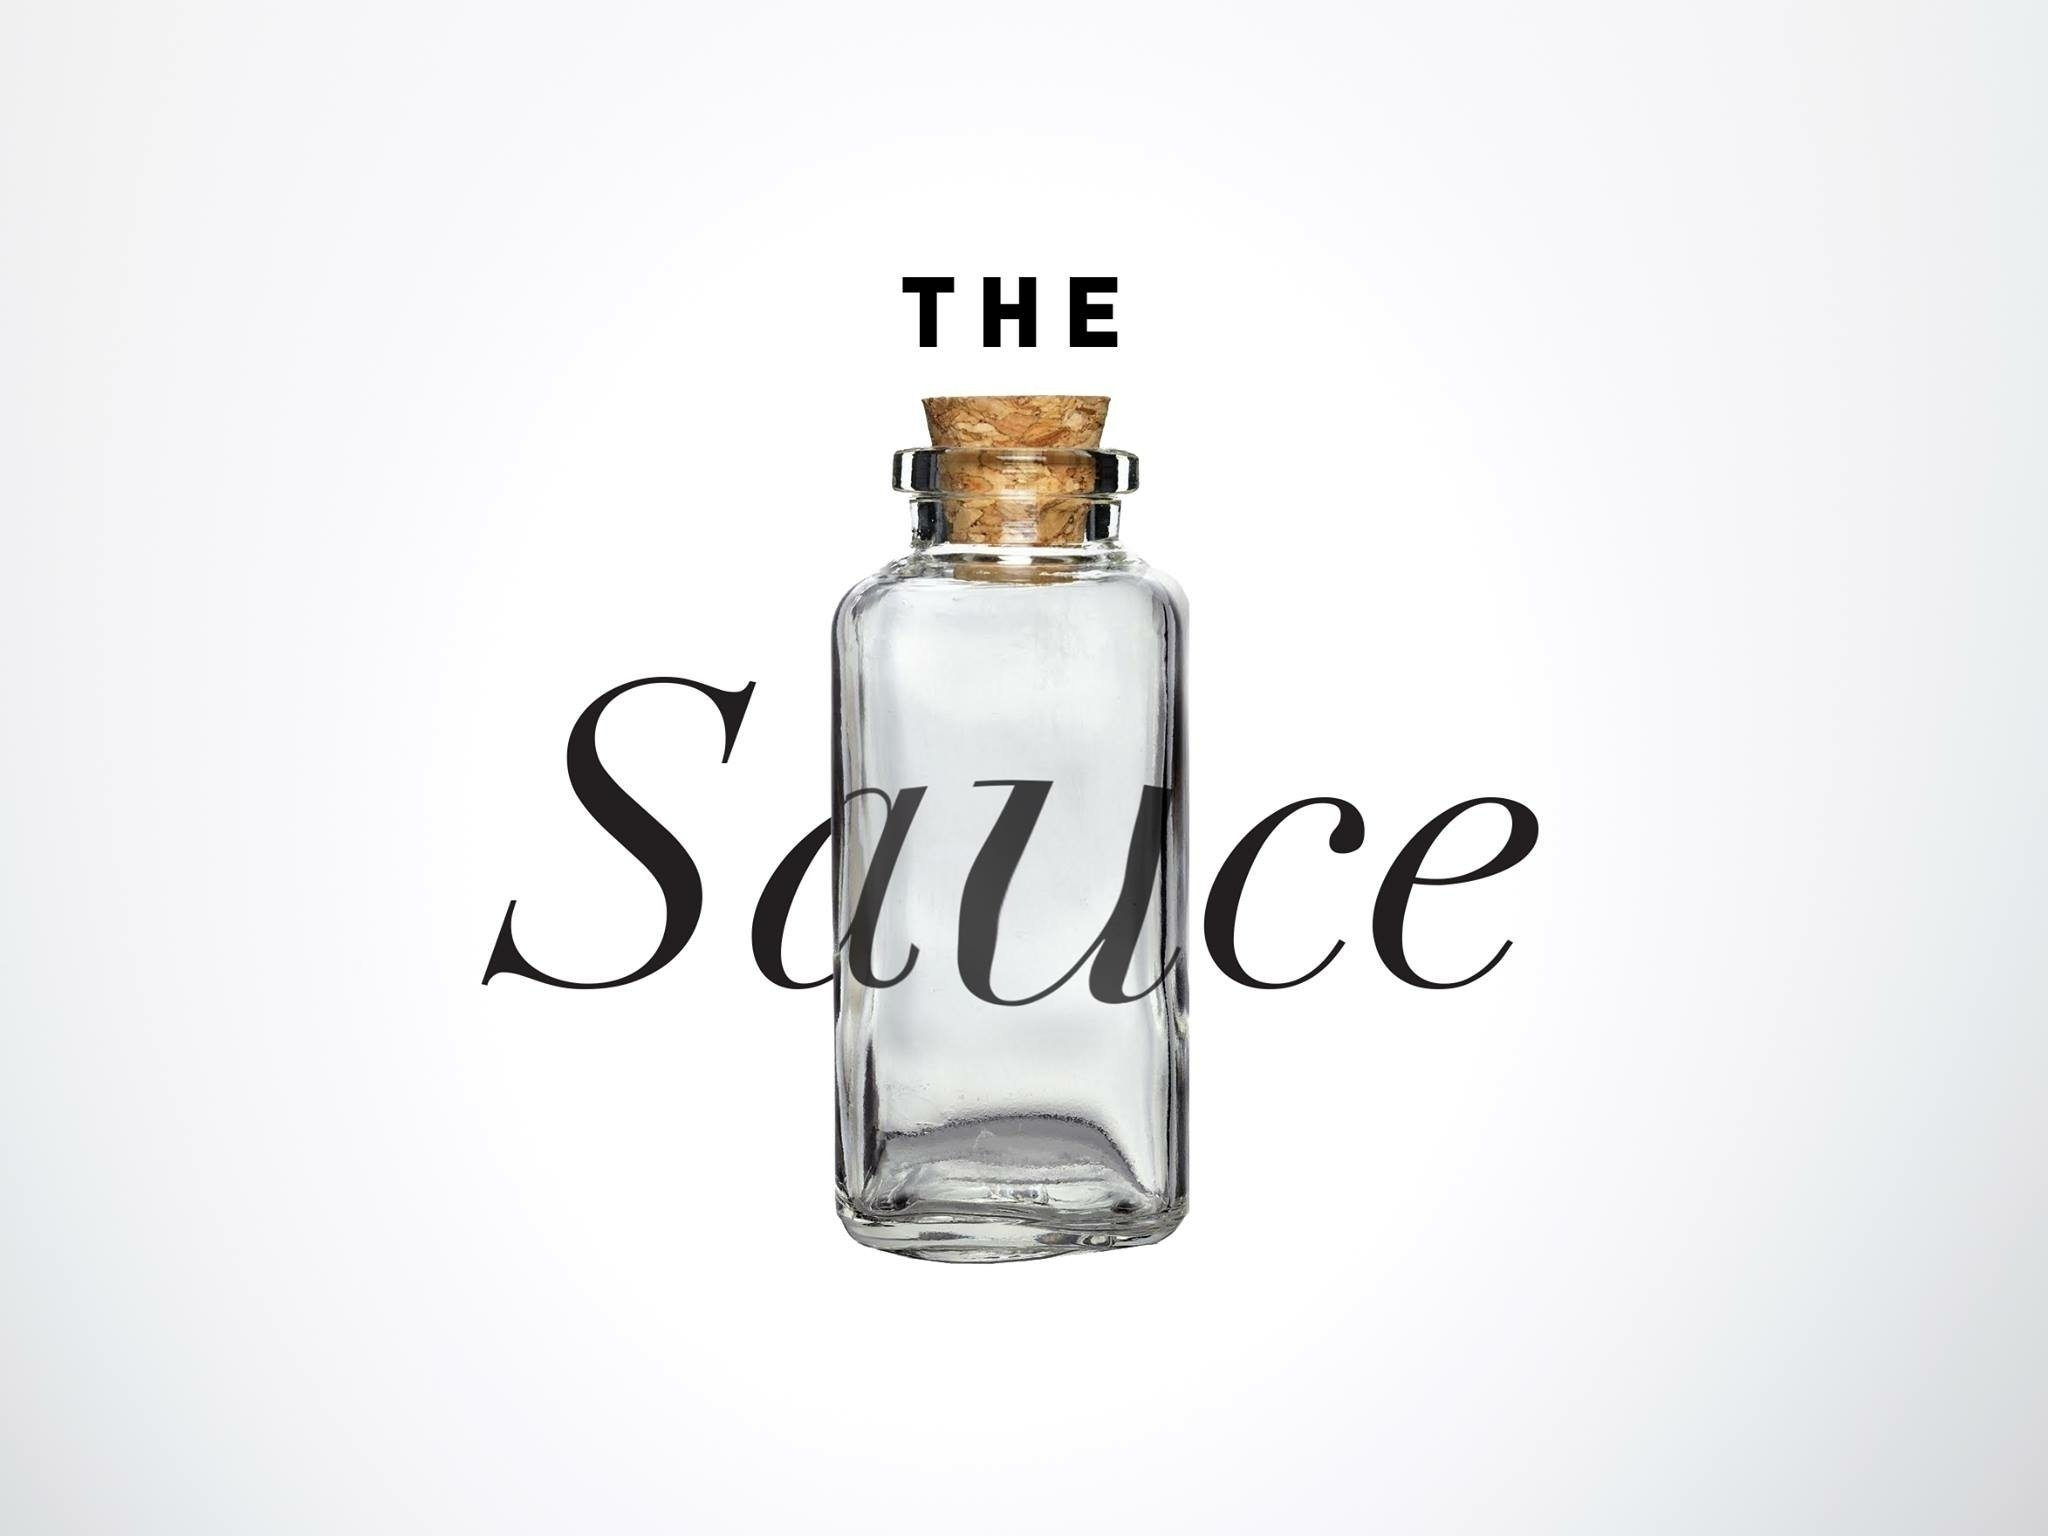 Image for The Sauce